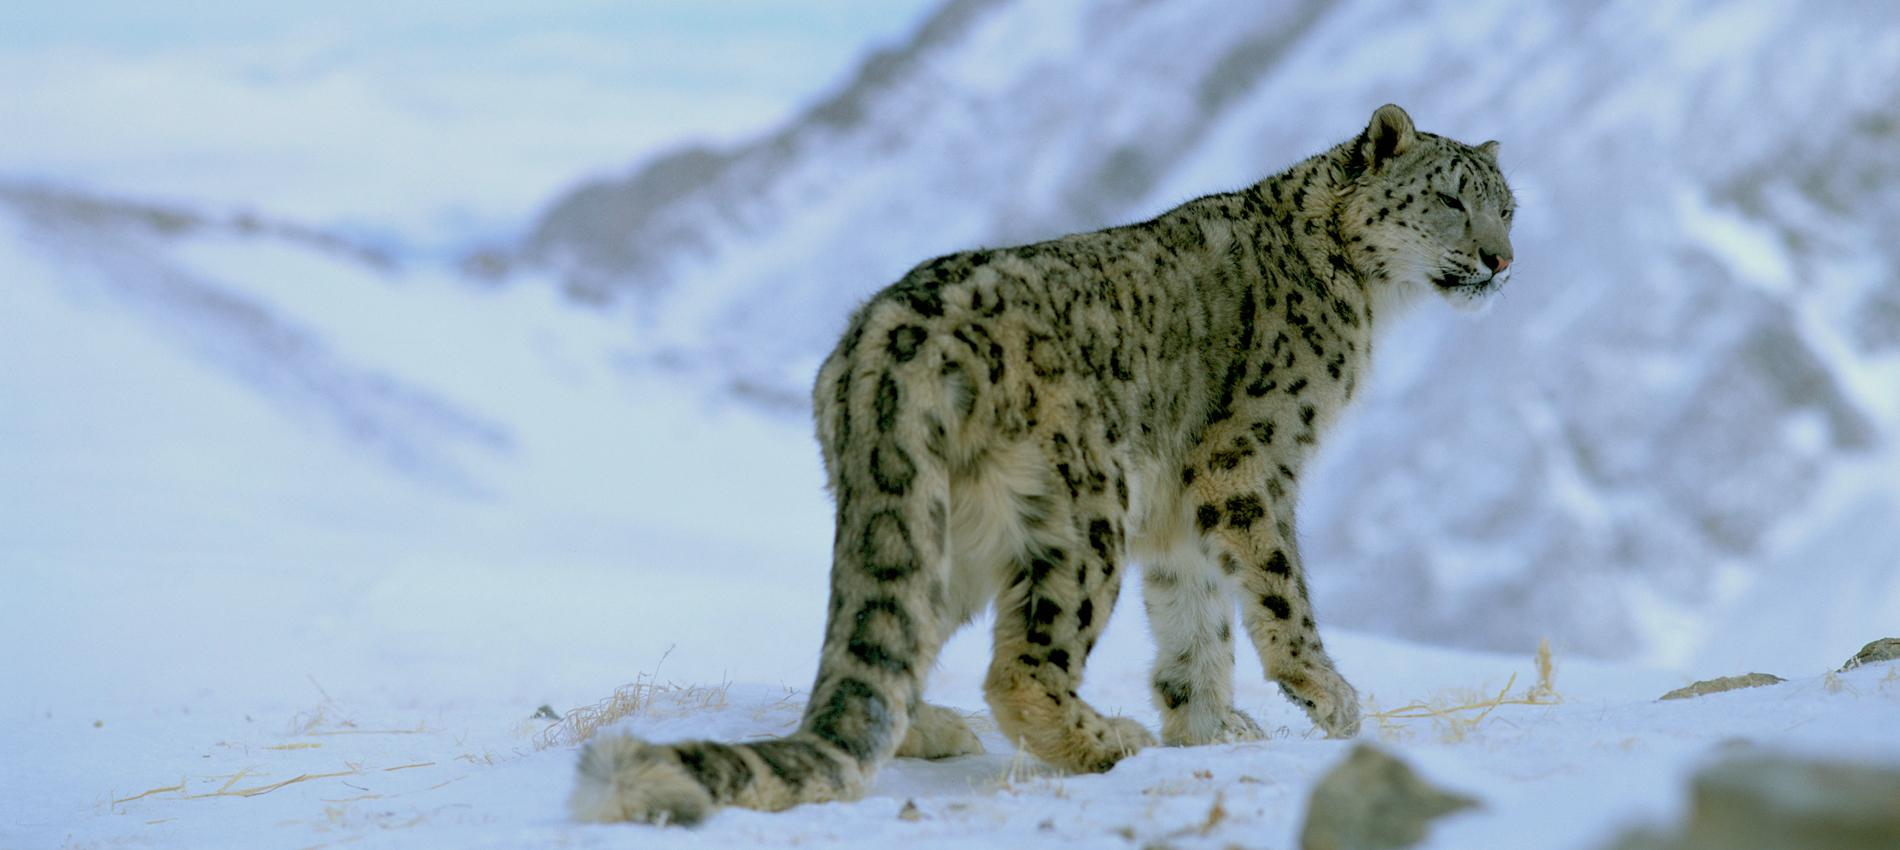 Top 10 facts about snow leopards